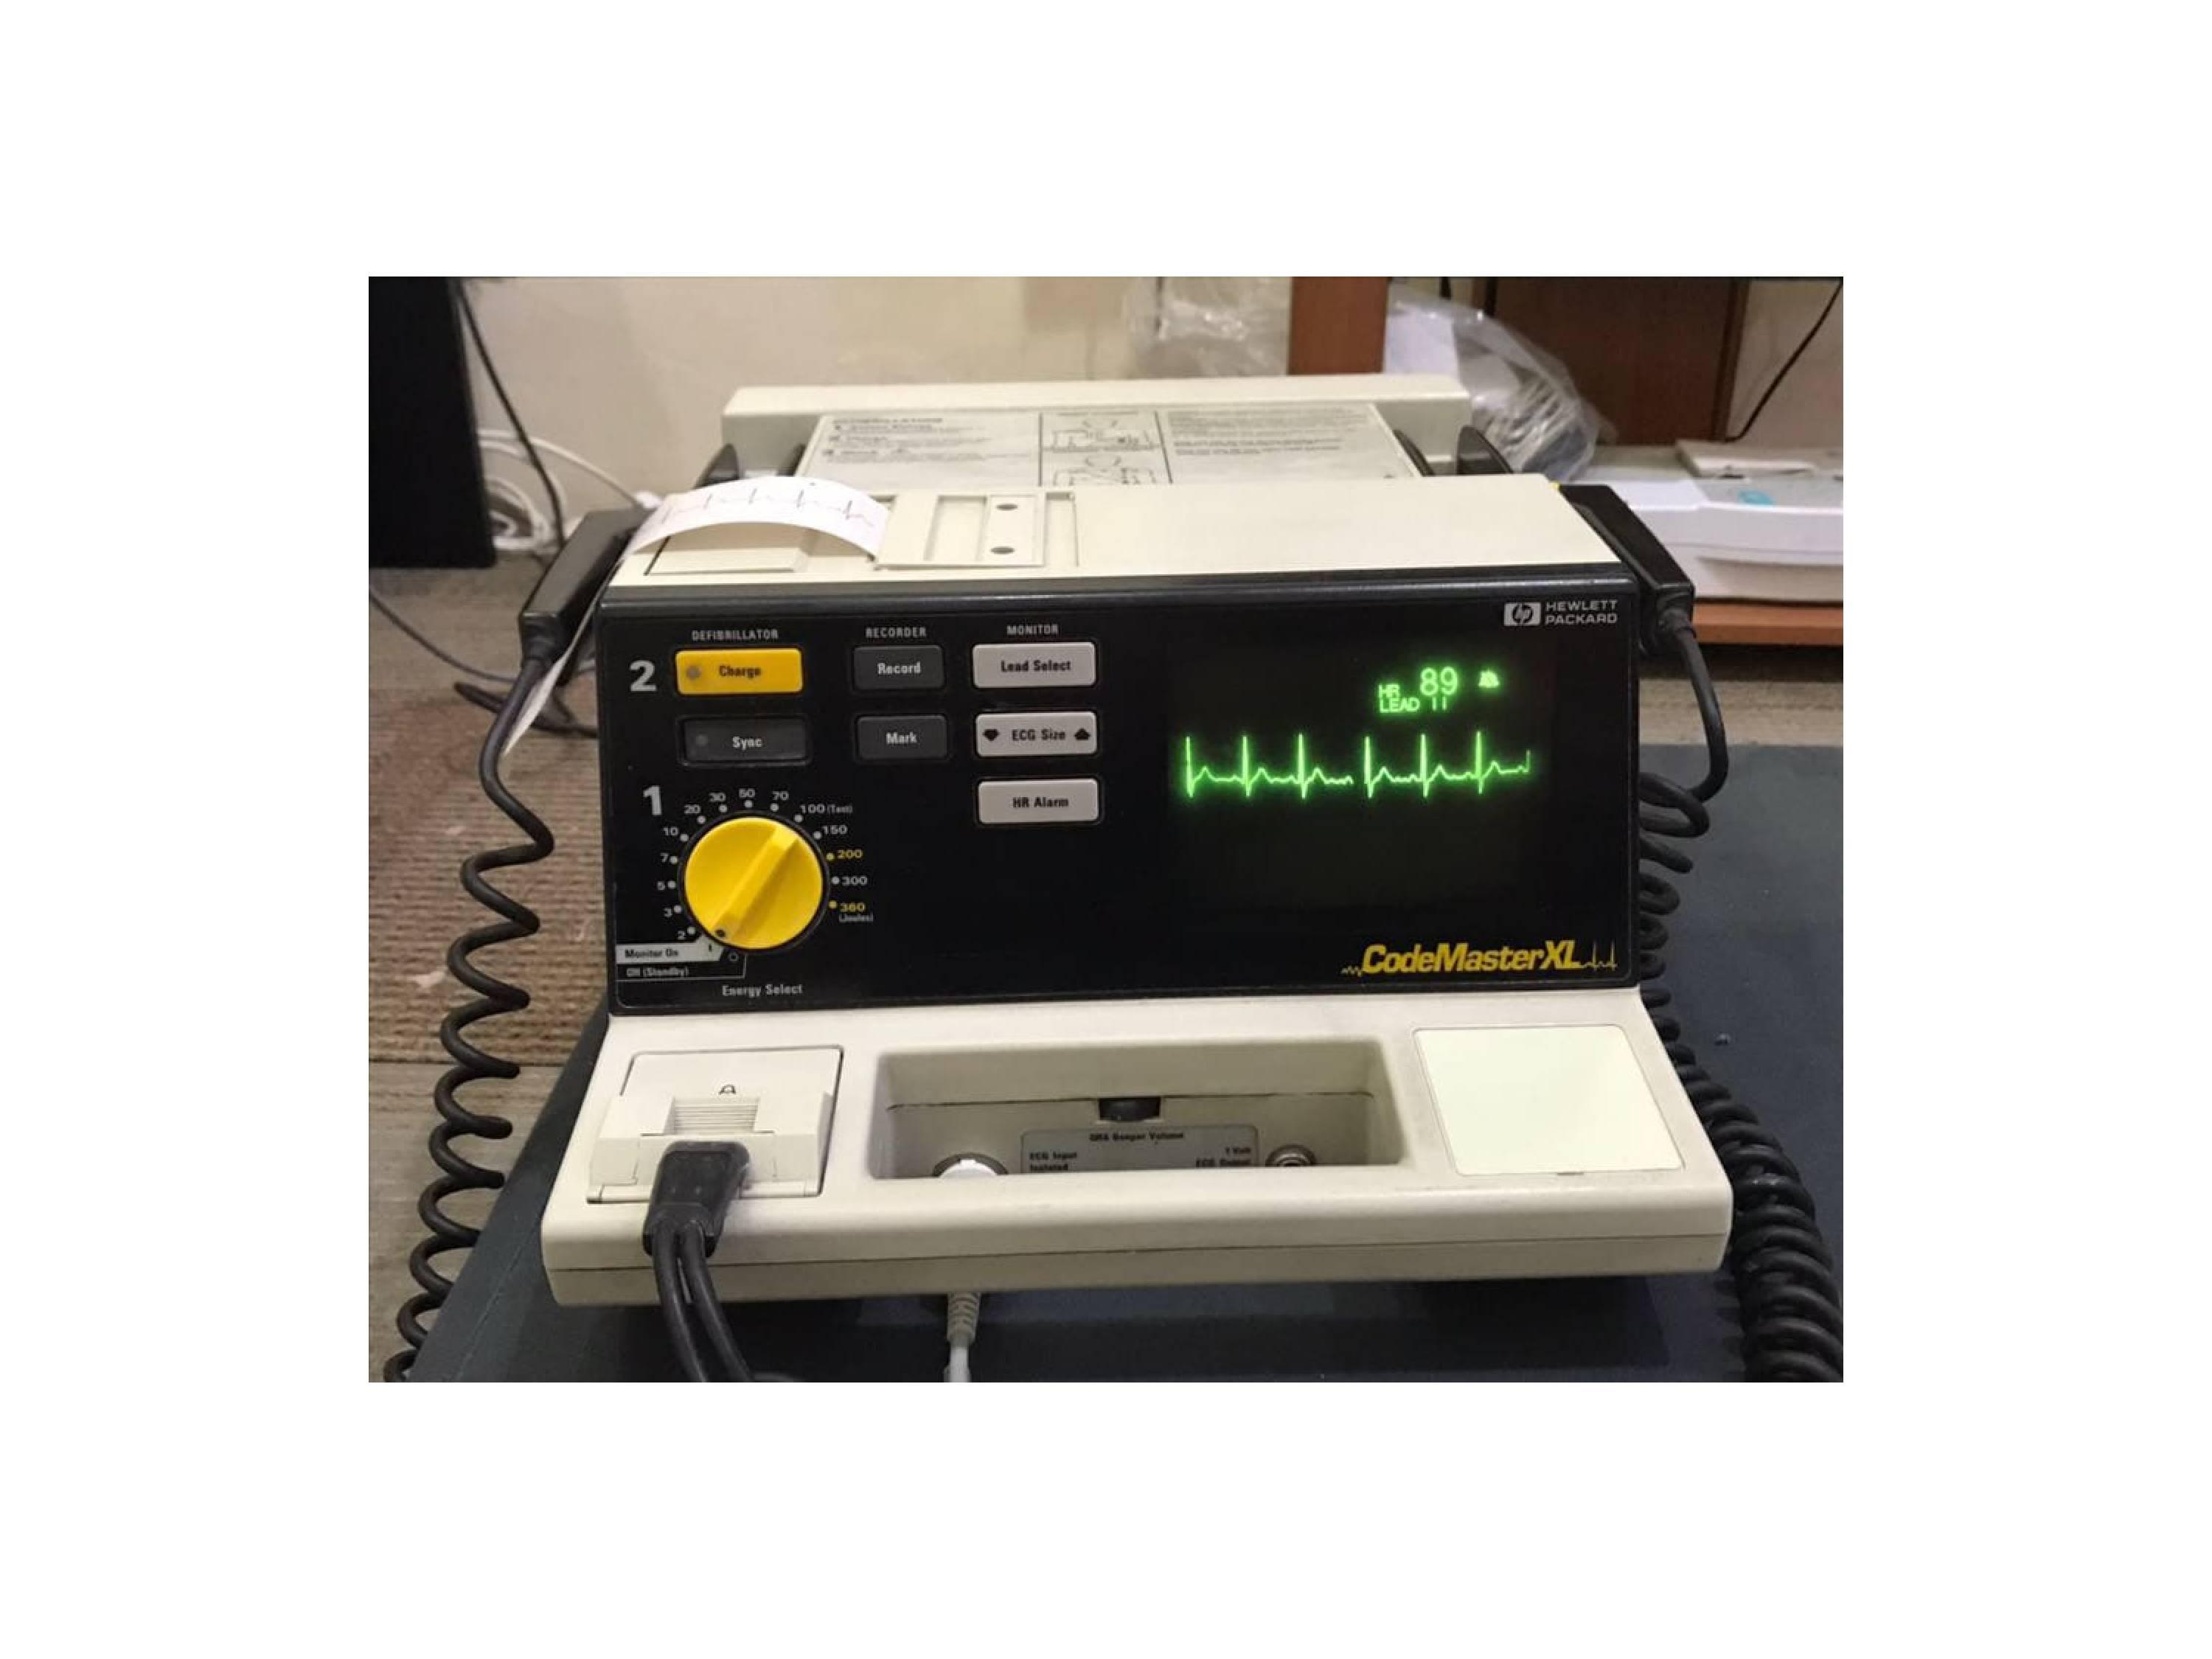 Sewa/Rental Defibrilator Monitor Manual